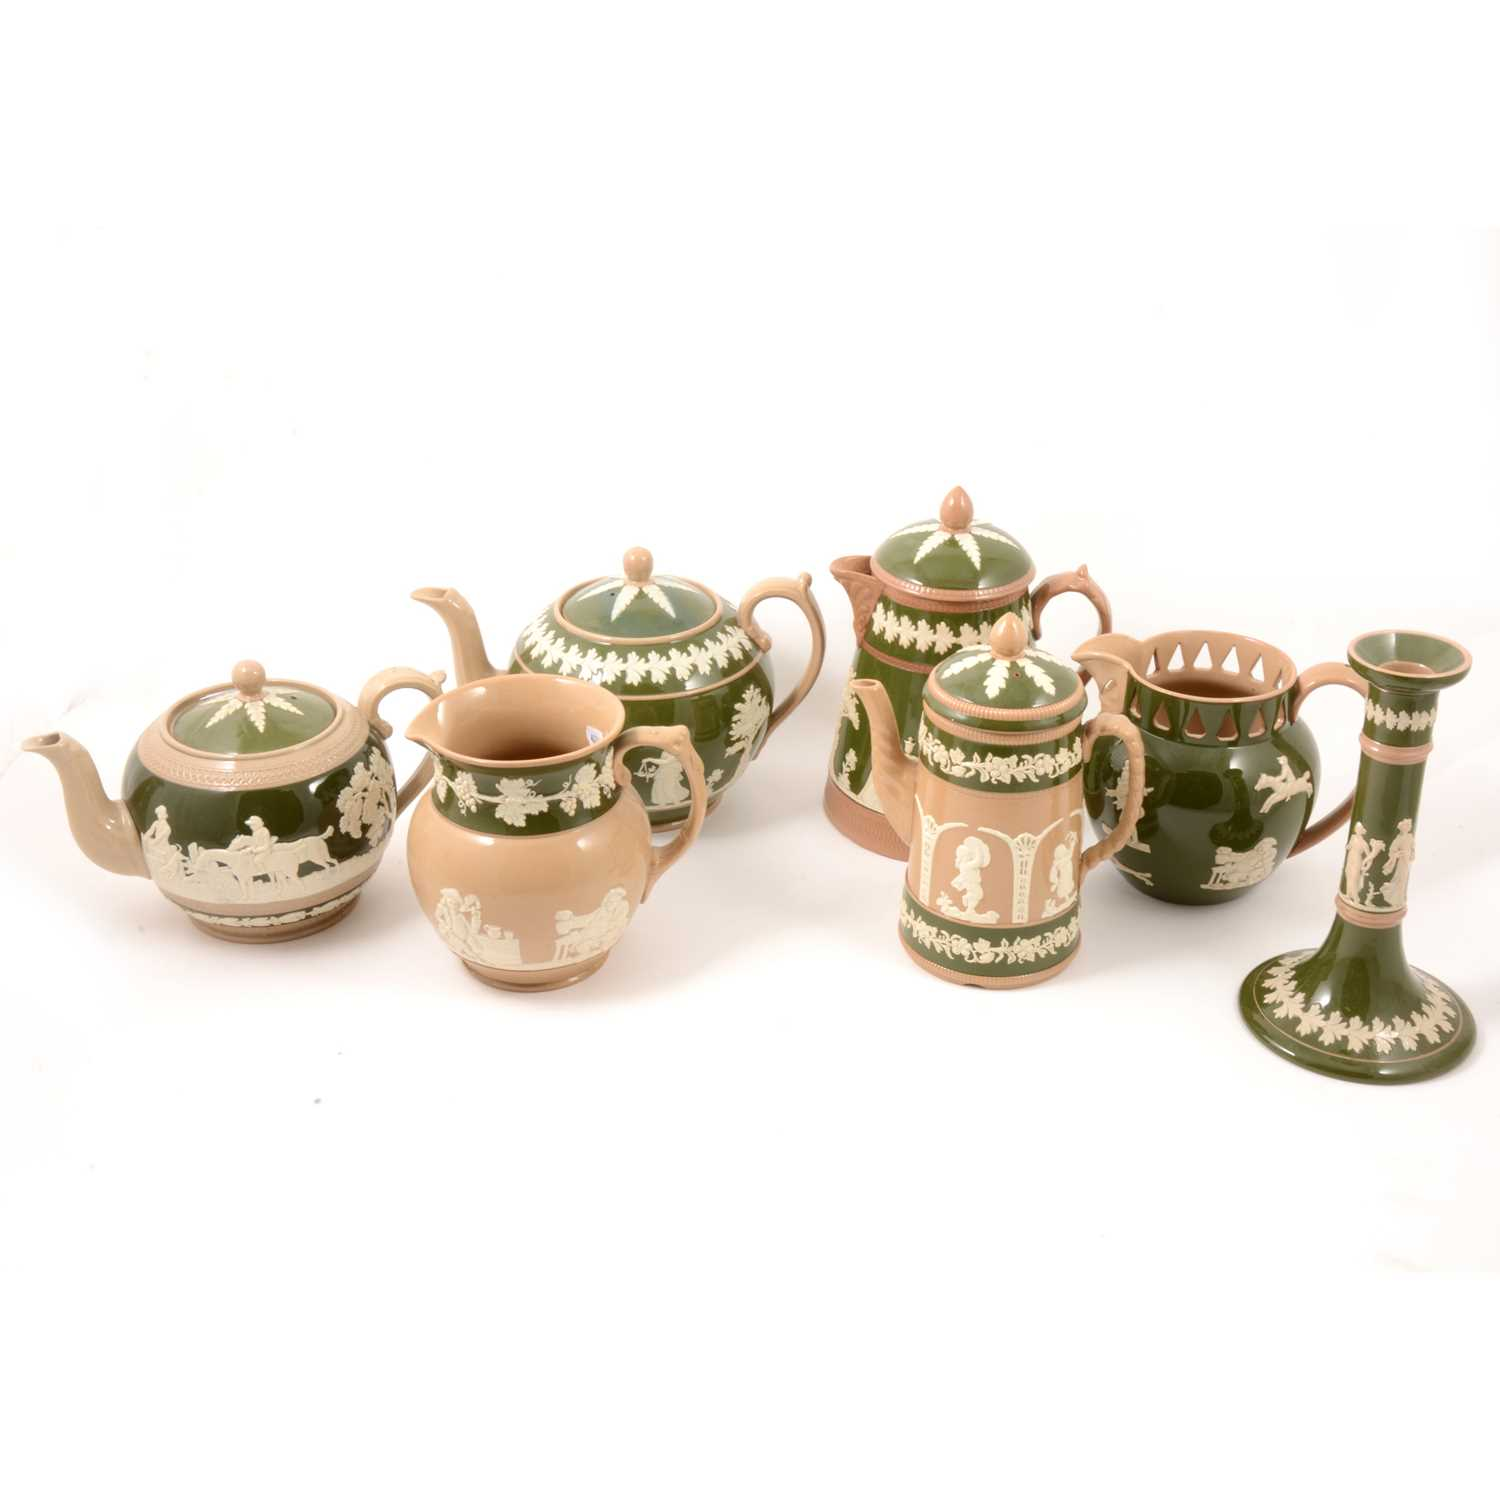 Lot 33 - A collection of Copeland green and buff glazed stoneware